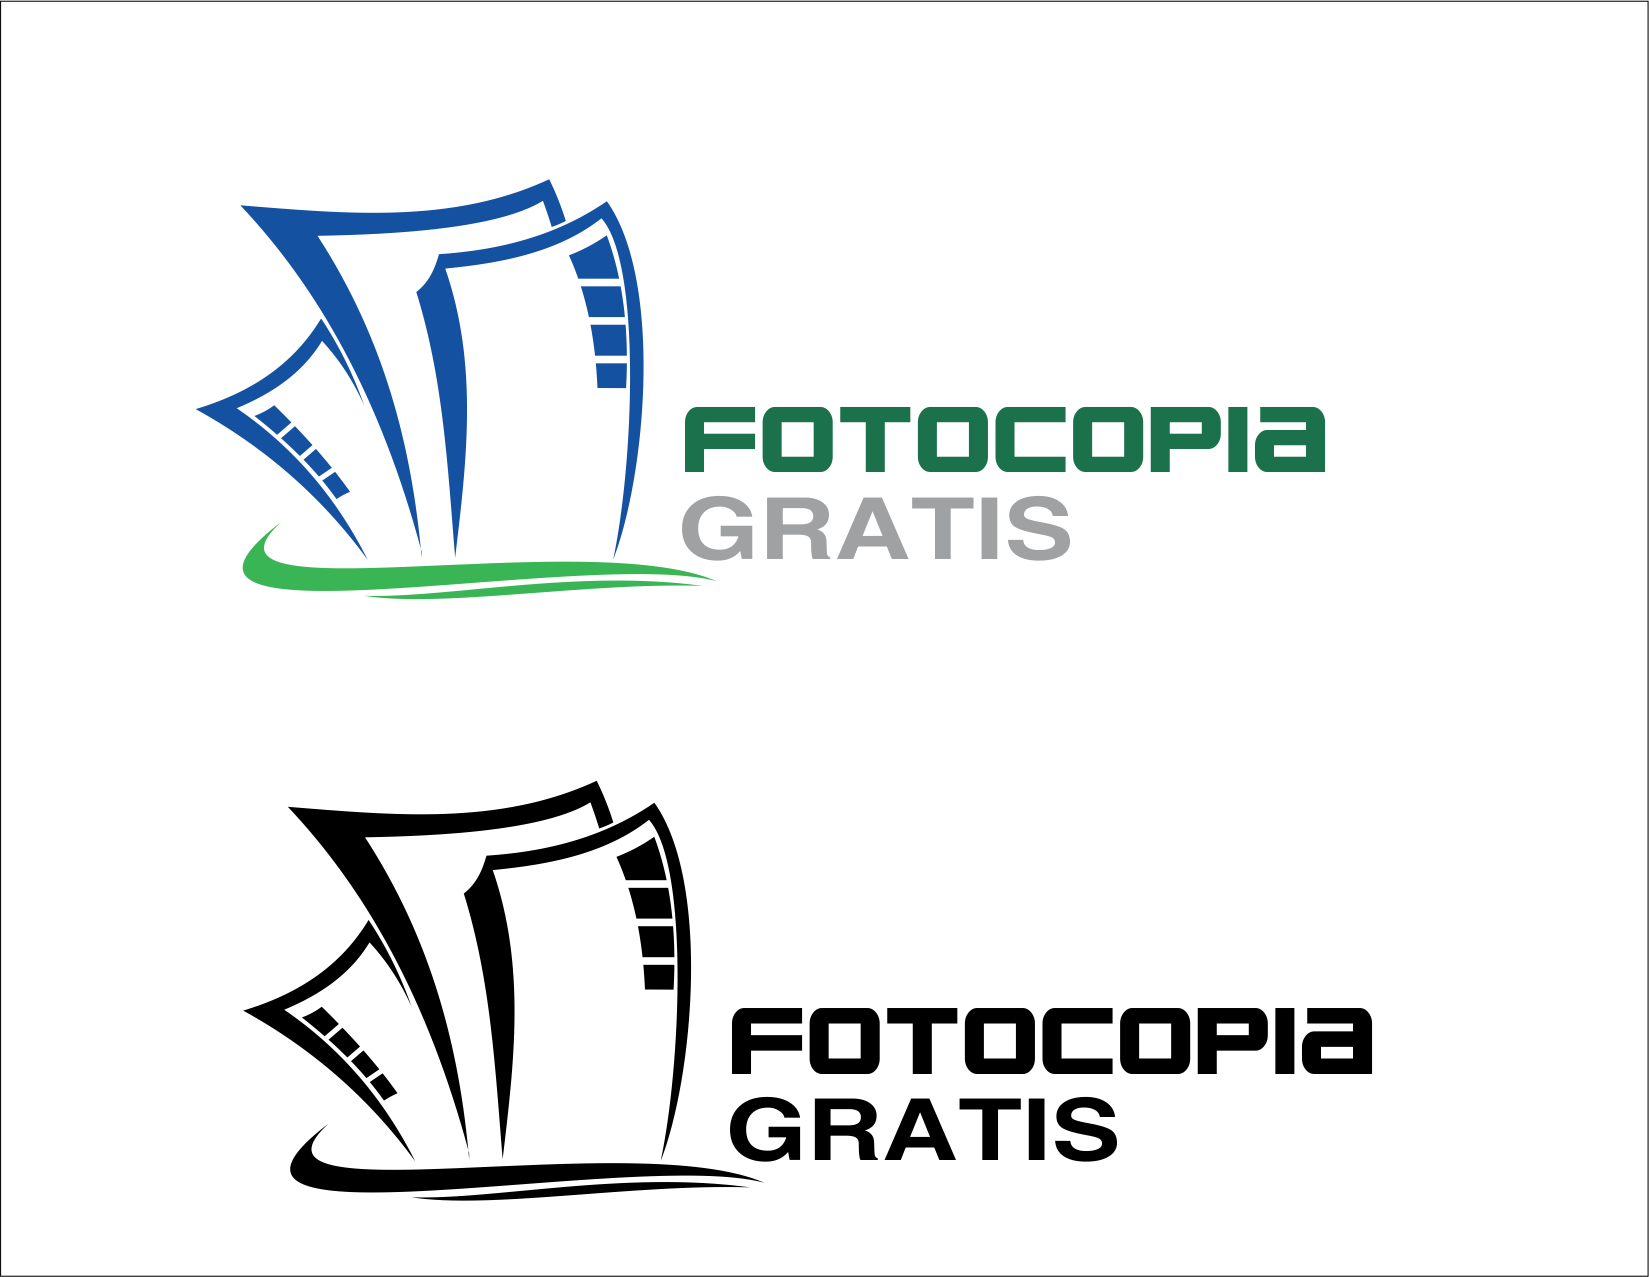 Logo Design by Yansen Yansen - Entry No. 145 in the Logo Design Contest Inspiring Logo Design for Fotocopiagratis.